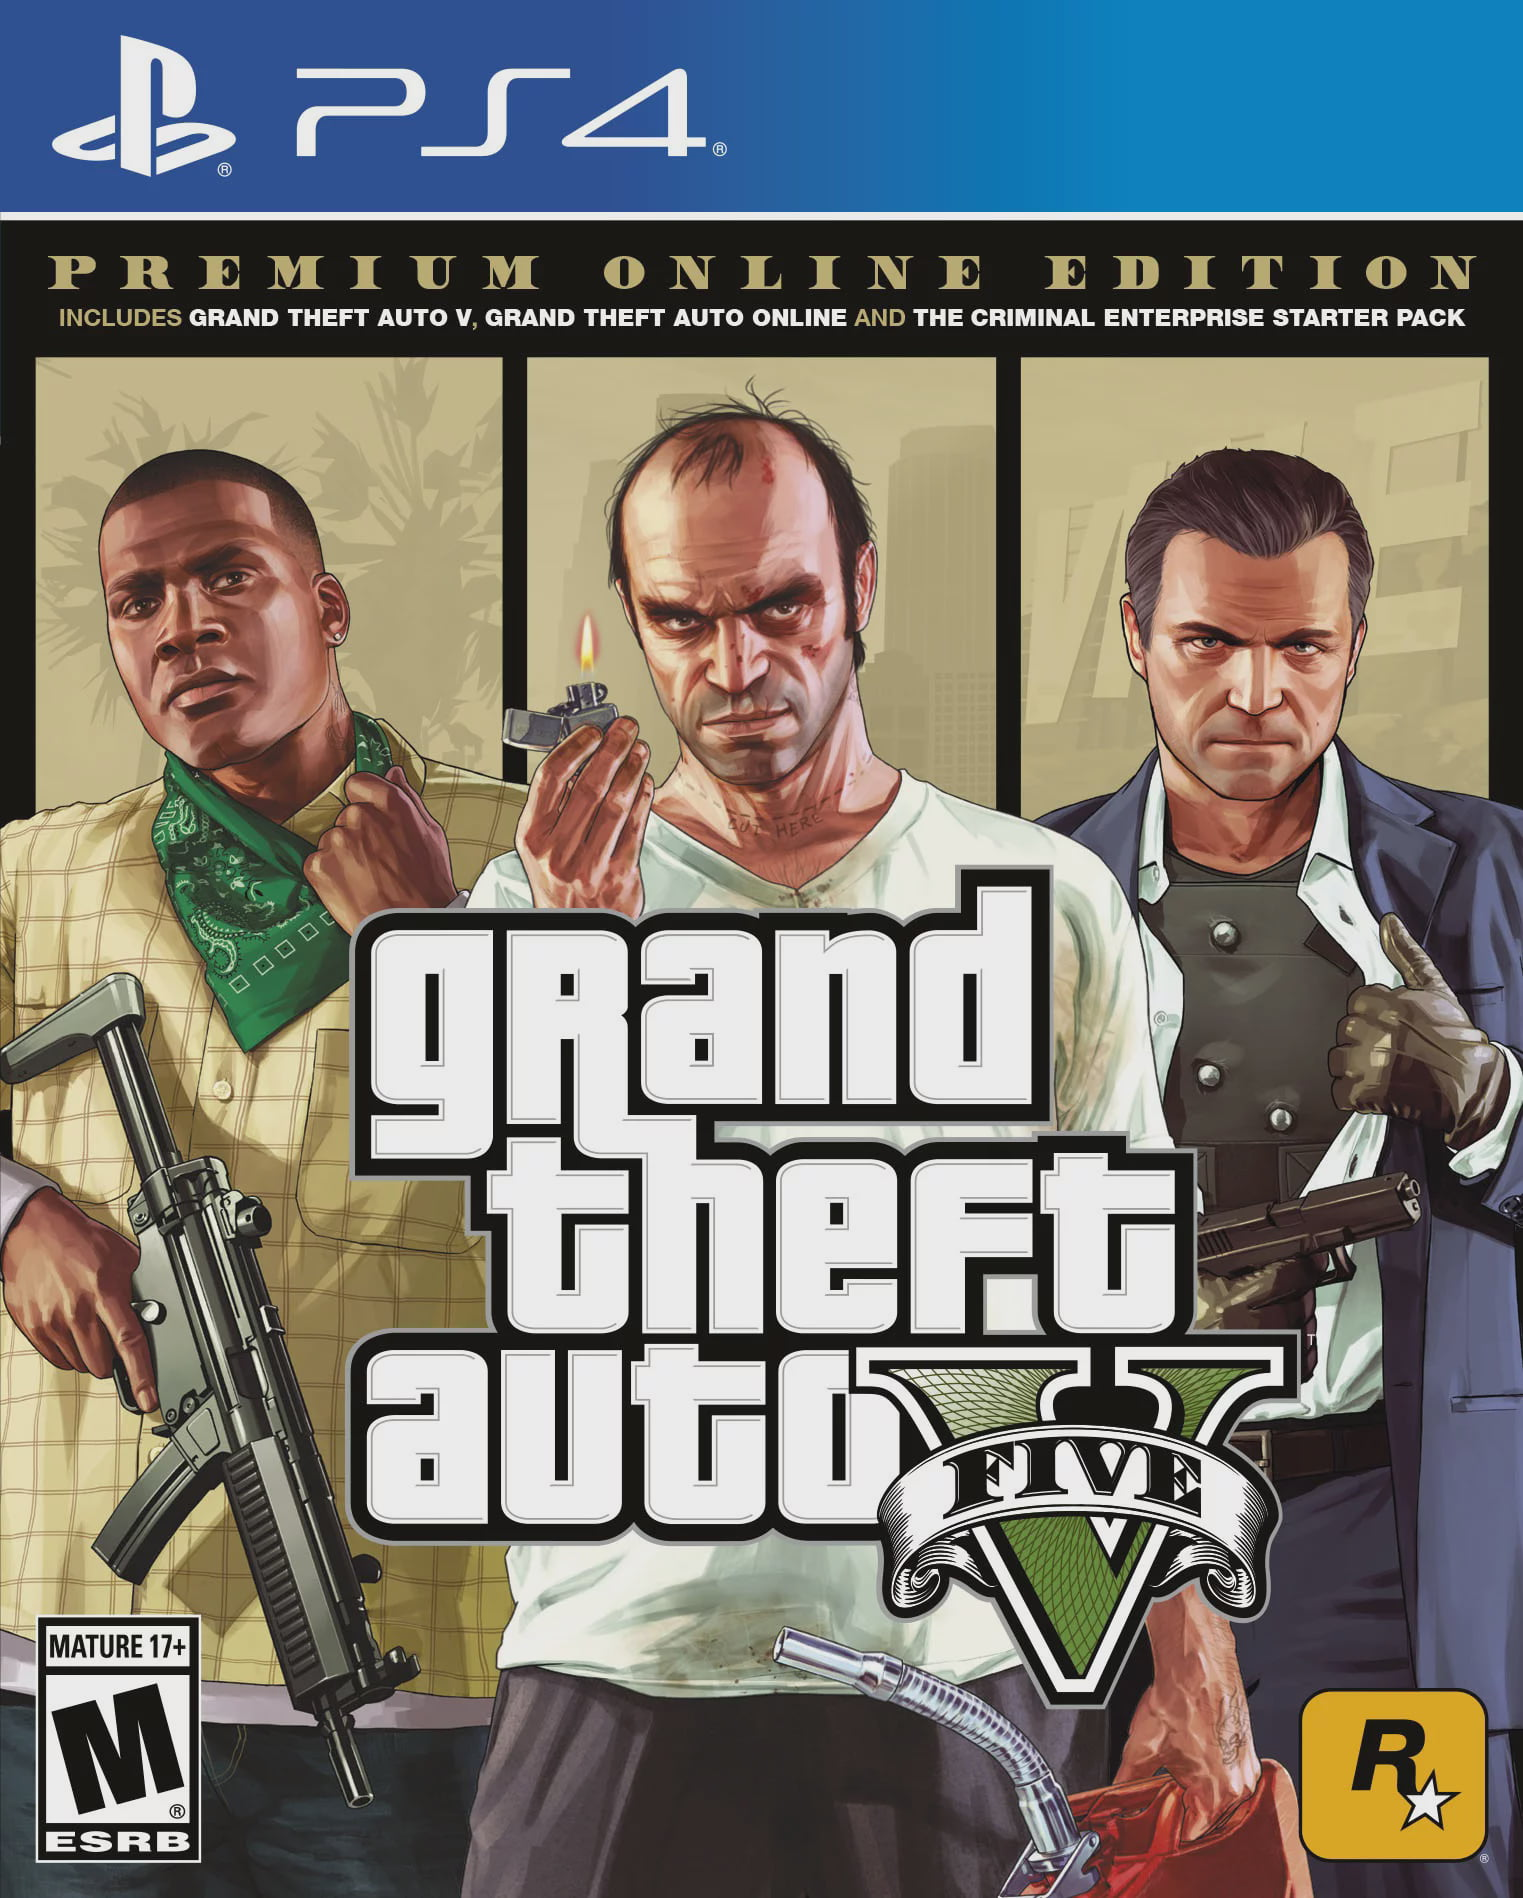 Grand Theft Auto V: Premium Online Edition, Rockstar Games, PlayStation 4, 710425570322